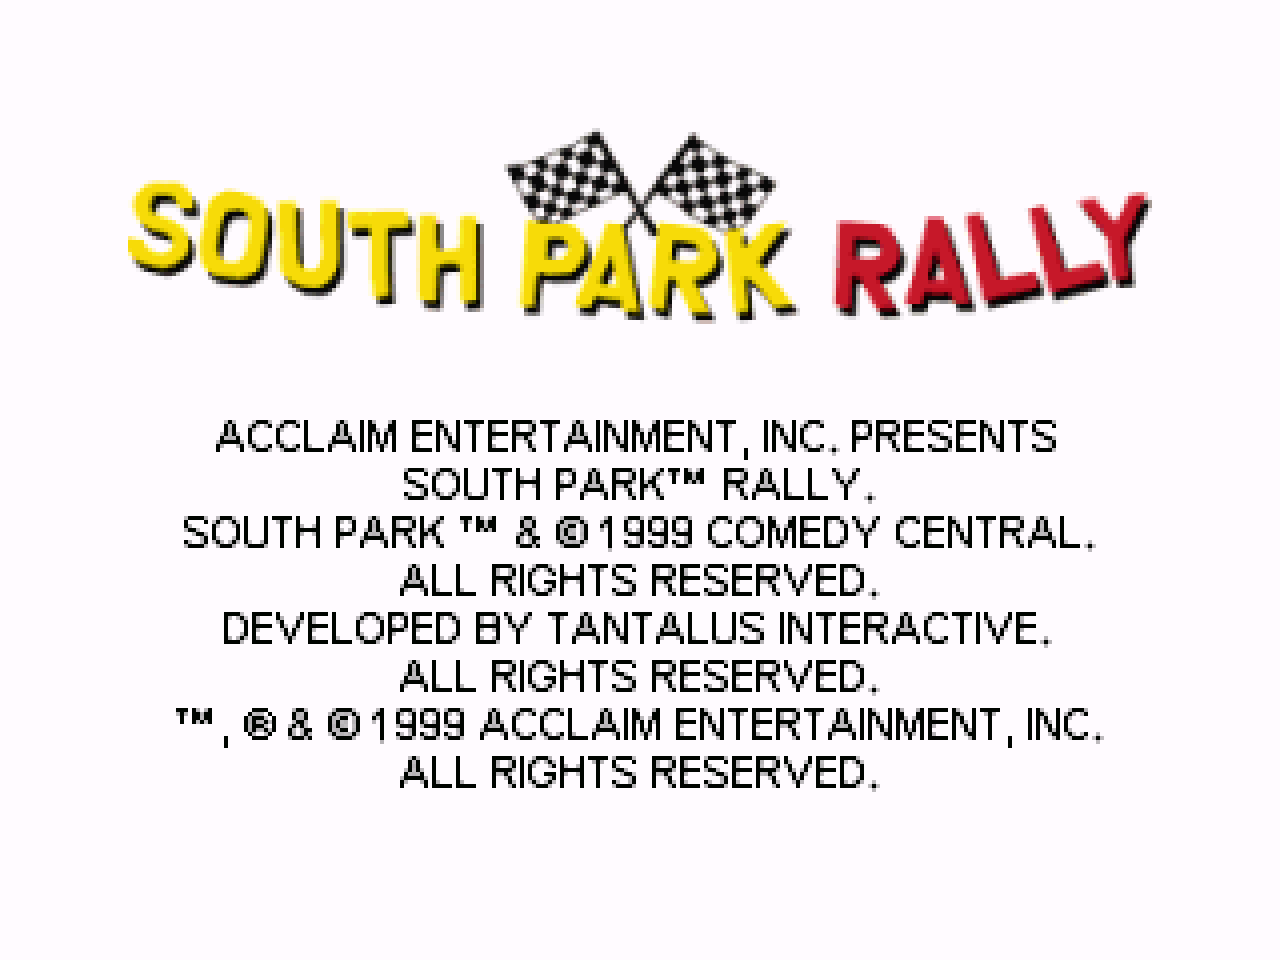 https://s3.eu-west-3.amazonaws.com/games.anthony-dessalles.com/South Park Rally PS1 2020 - Screenshots/South Park Rally-201125-180516.png